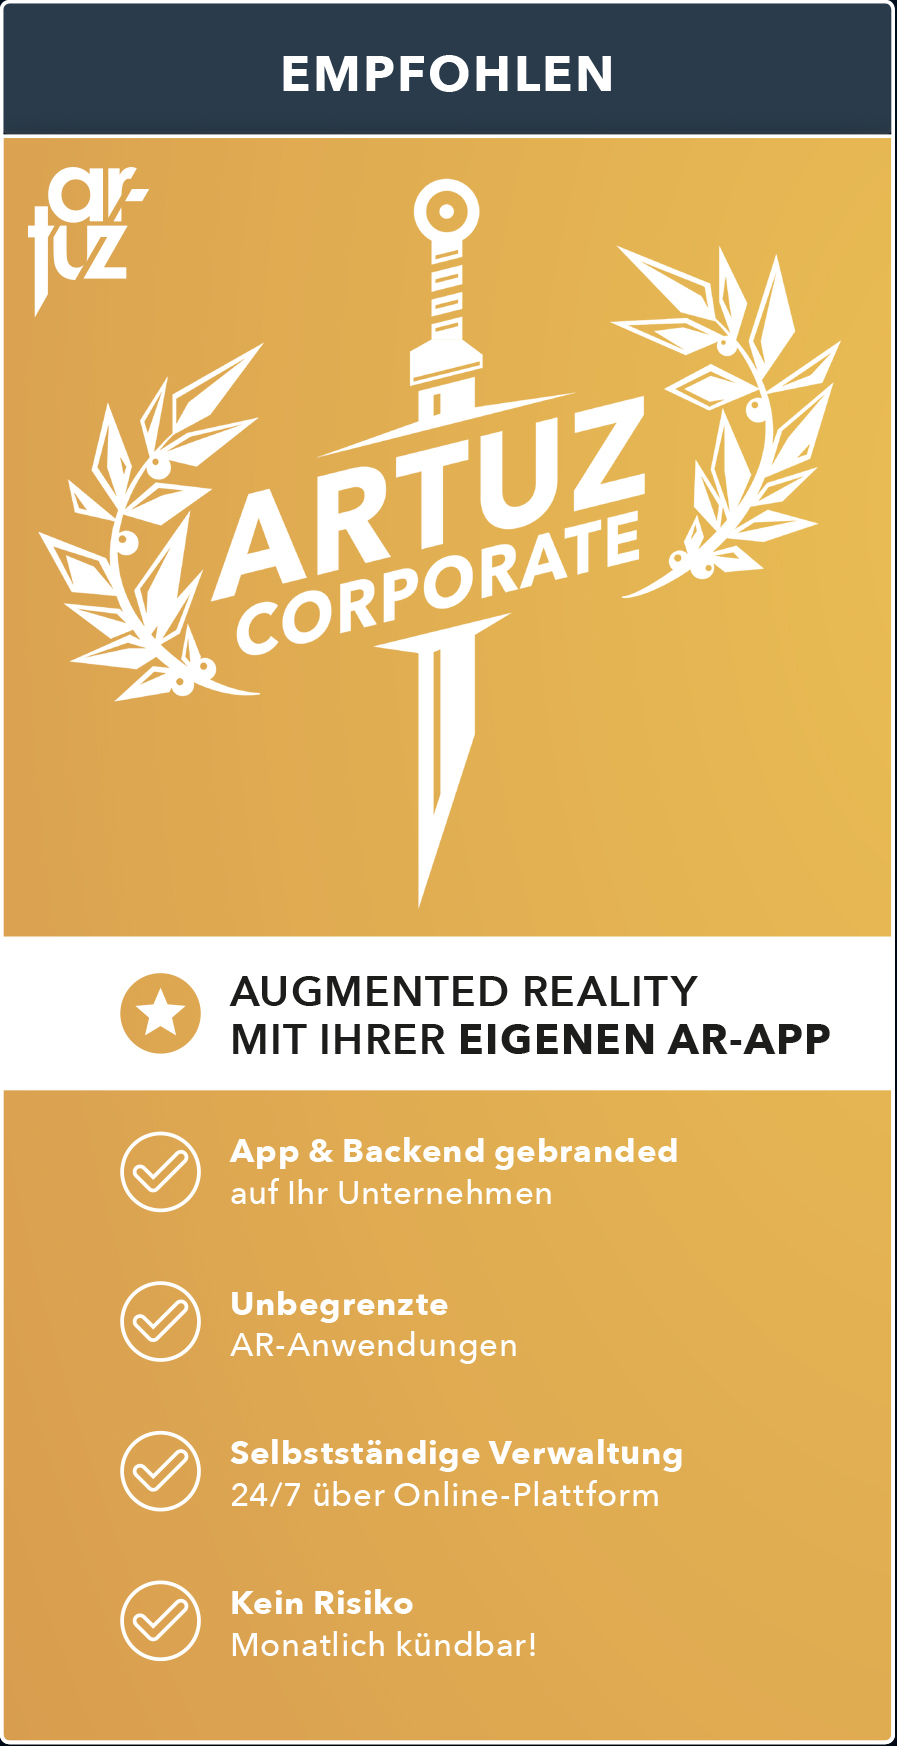 AR-TUZ Corporate!